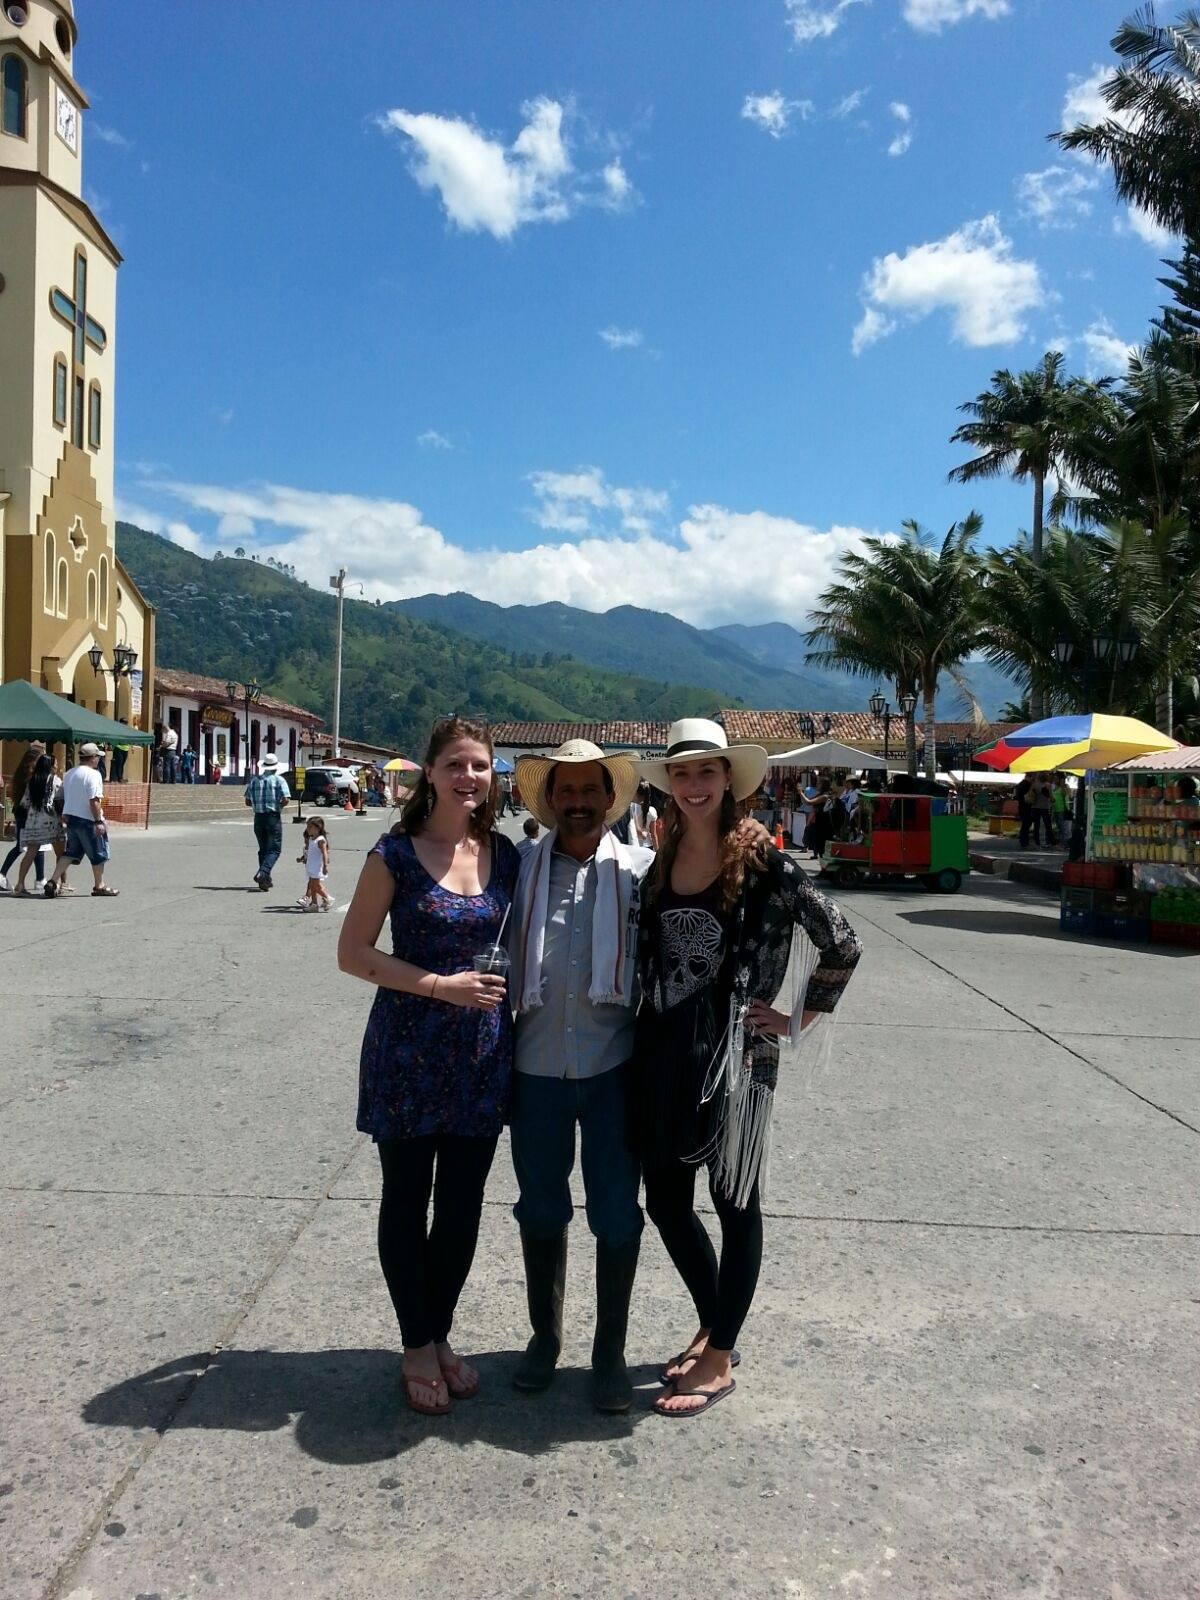 My friend Monika & I in the town square of Salento.